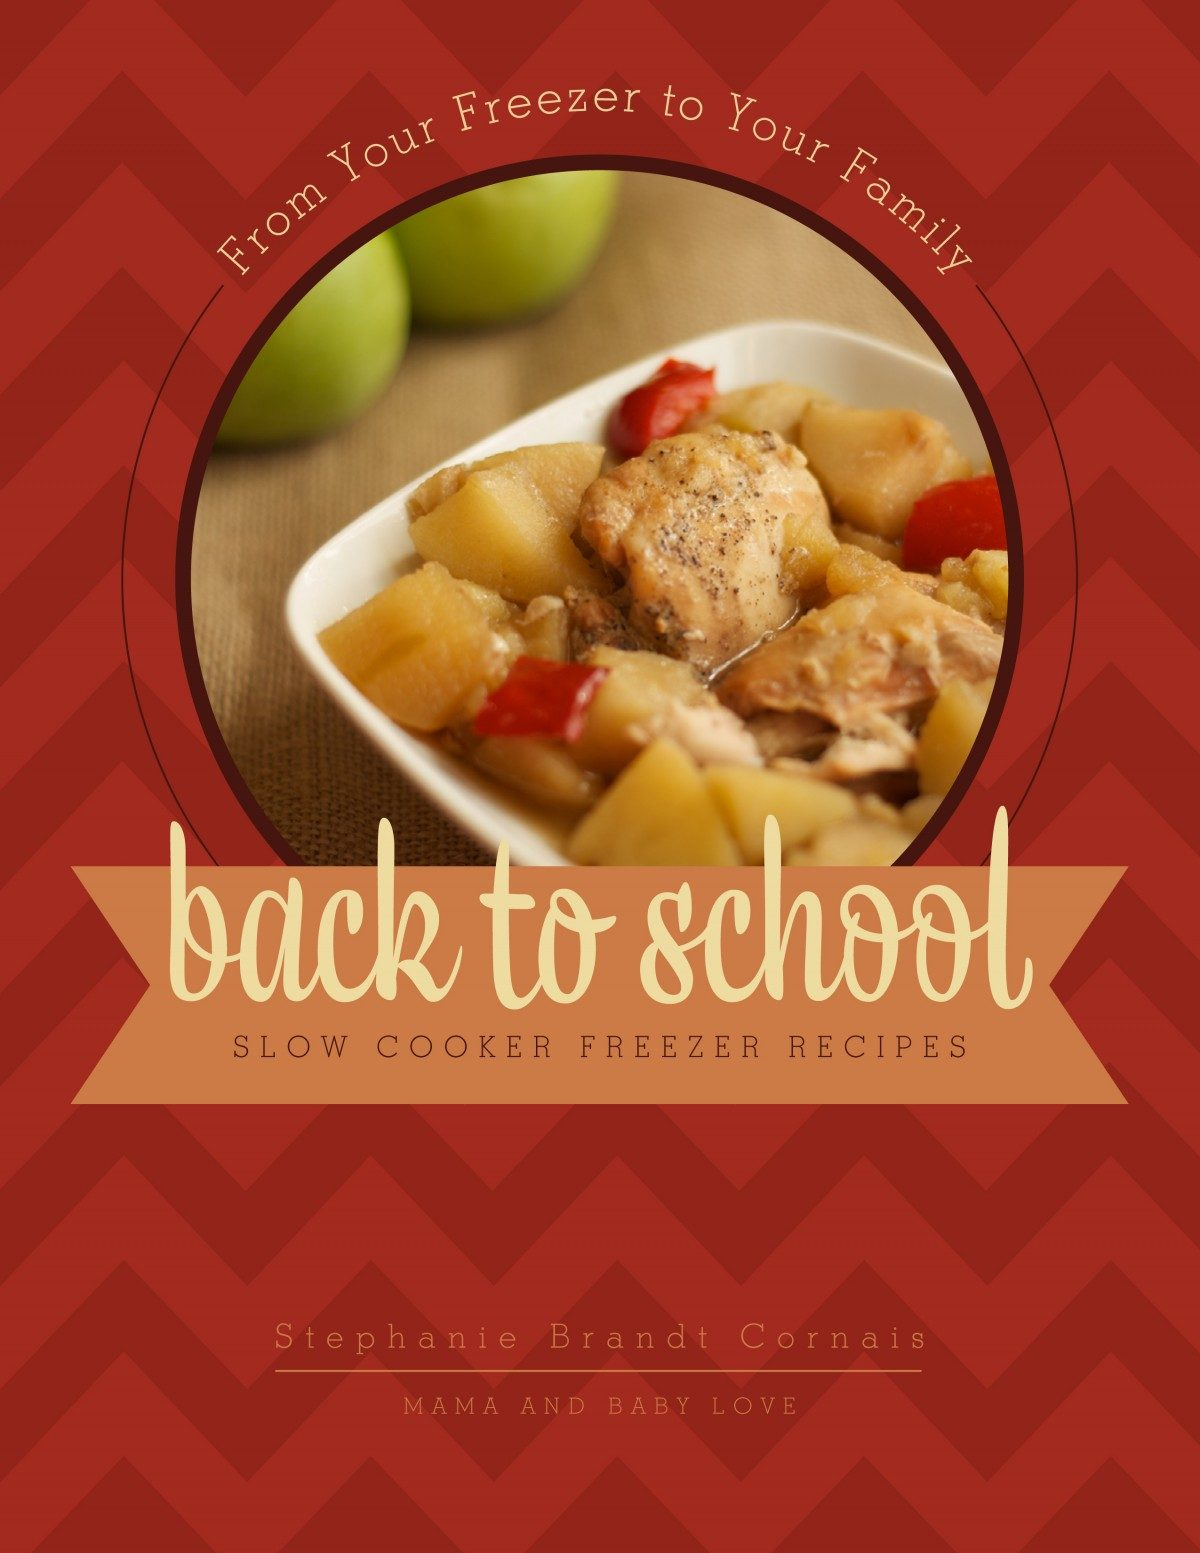 Back To School Slow Cooker Freezer Recipes Mini eCookbook